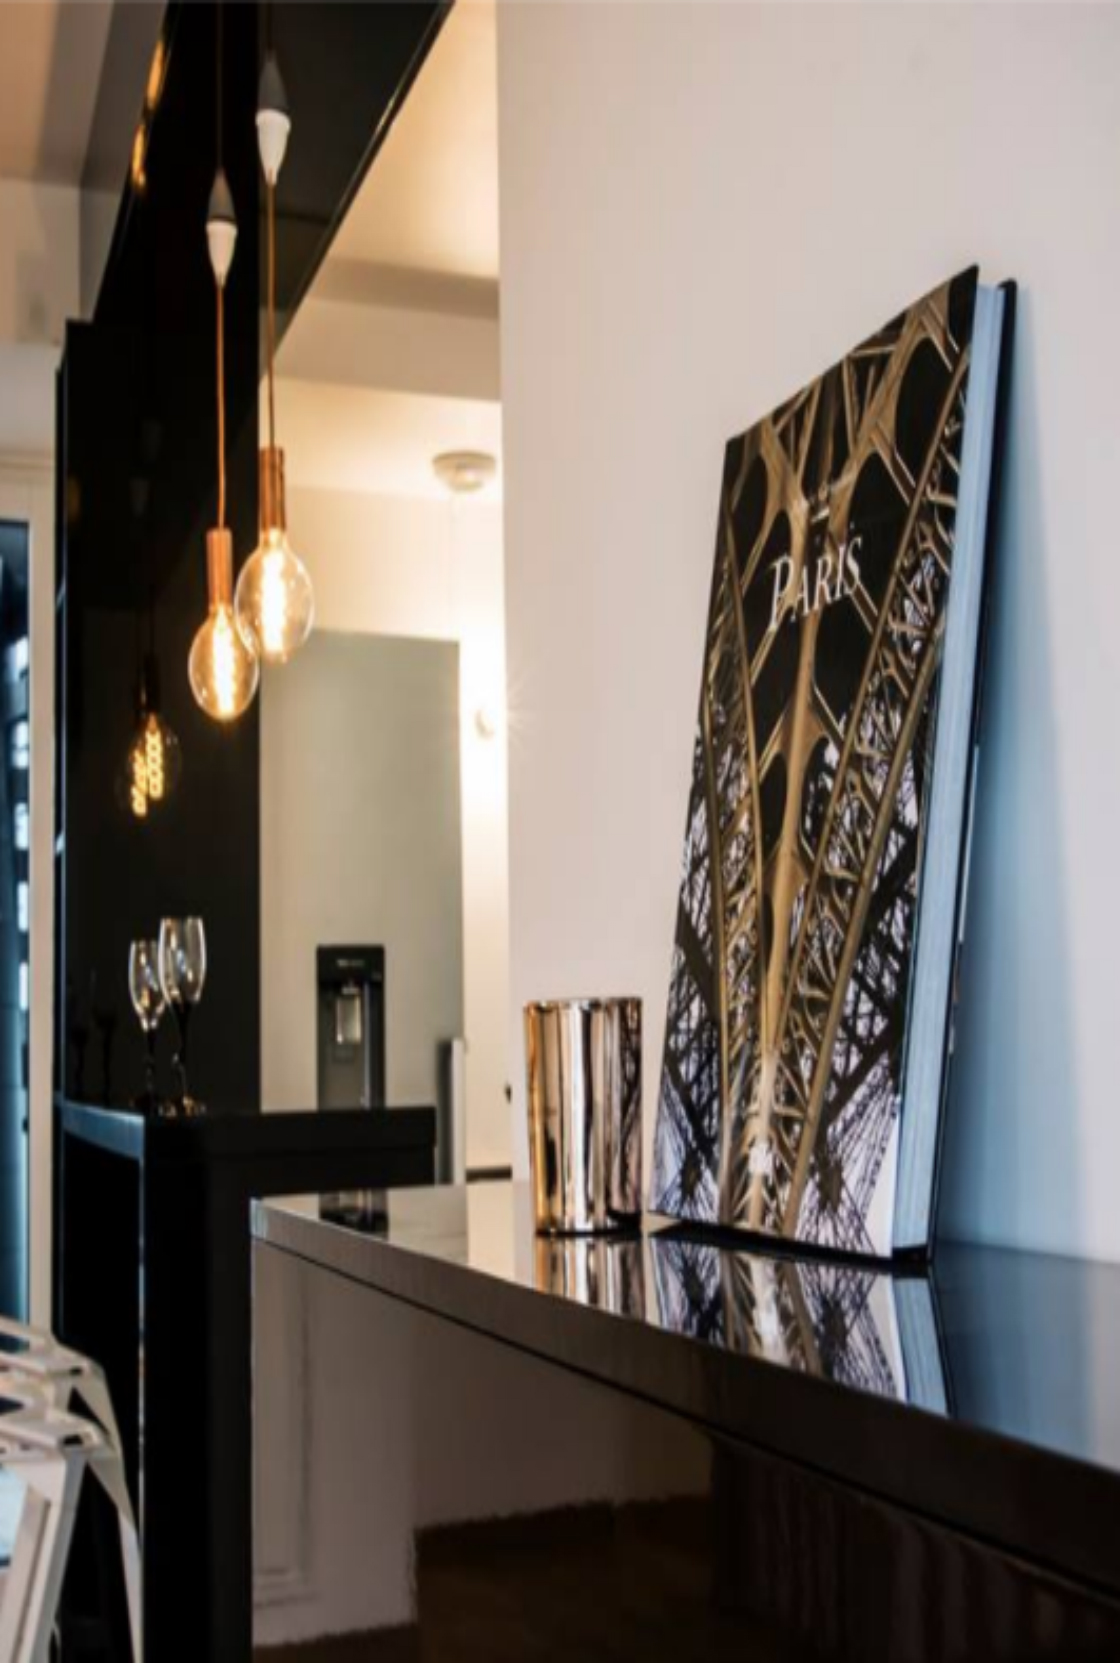 10 Beautiful Interior Design Ideas to Take From Gosni Design Projects